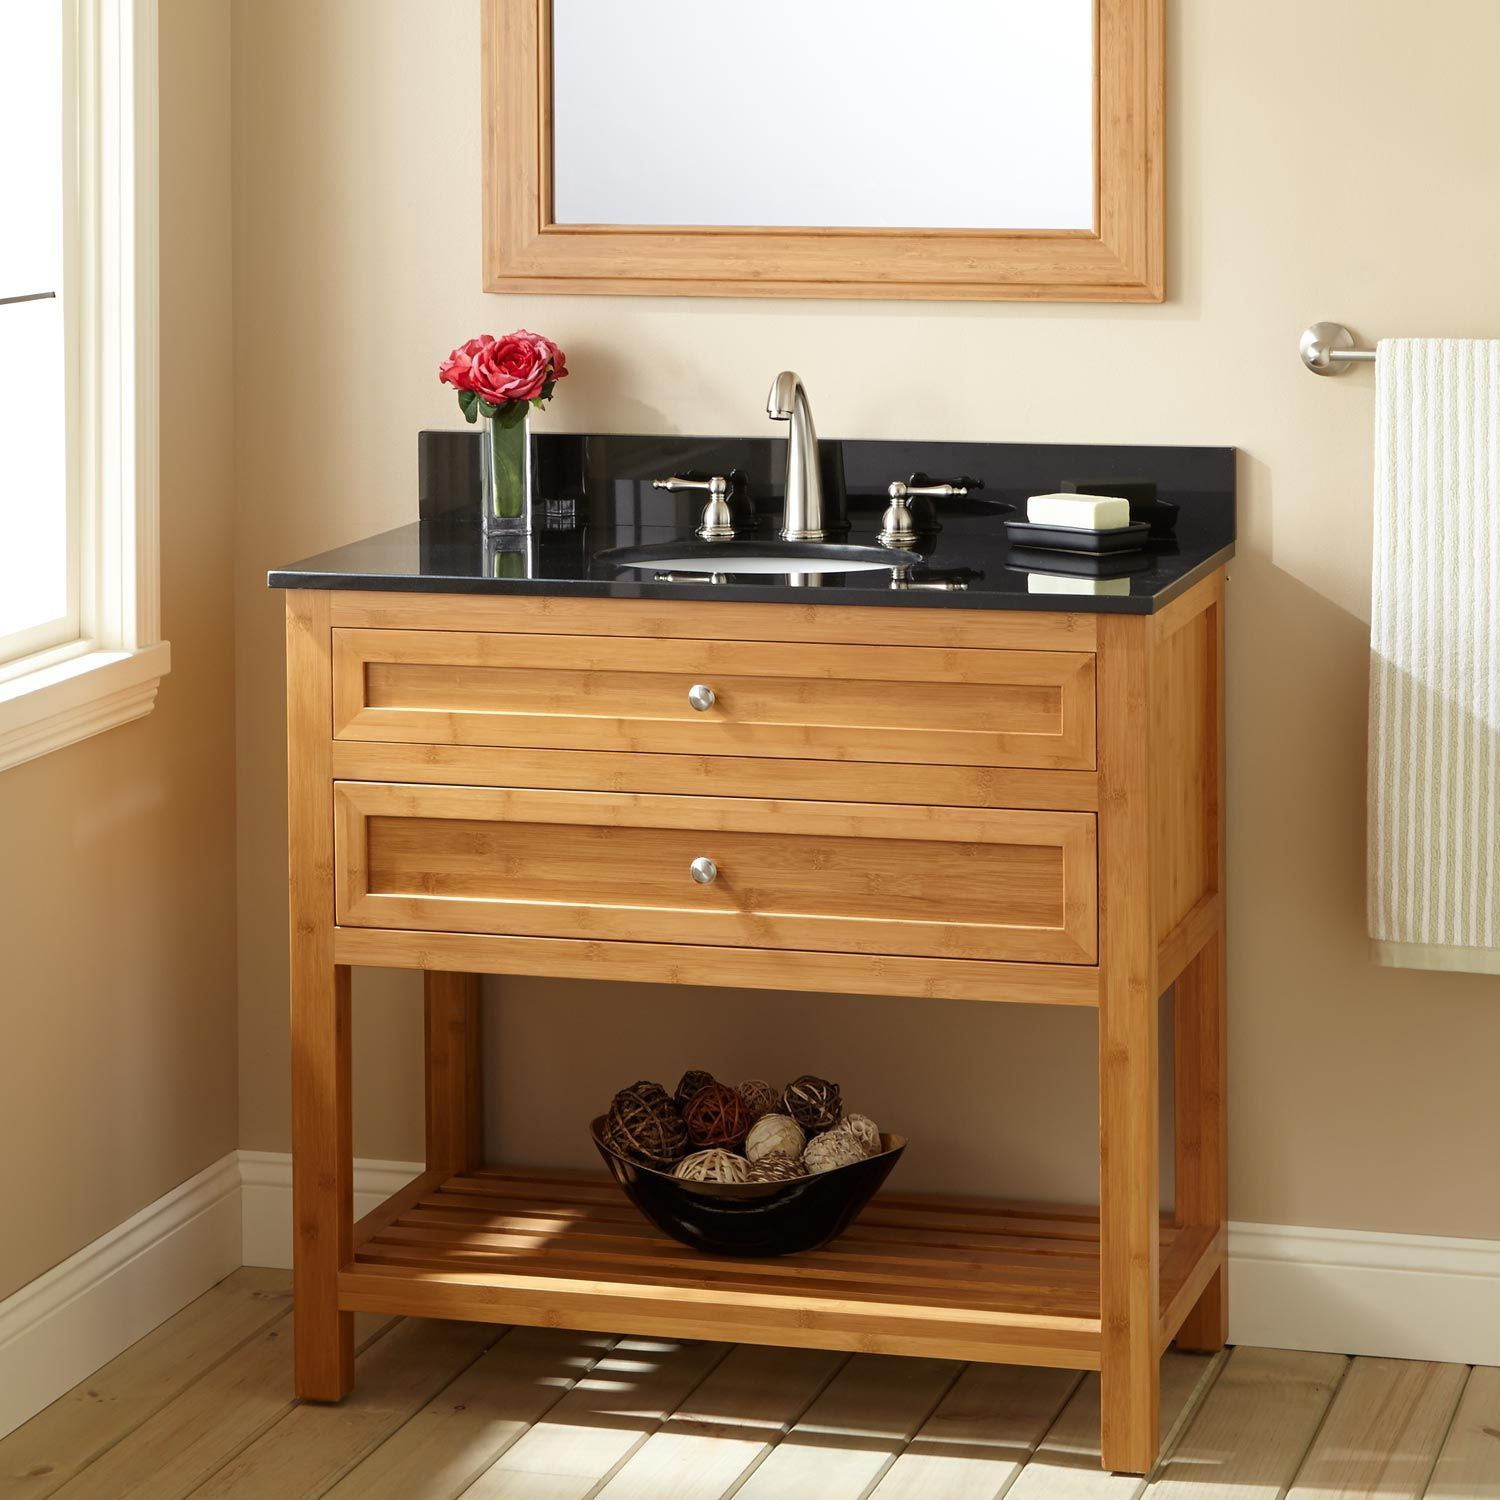 36  Narrow Depth Thayer Bamboo Vanity for Undermount Sink. 36  Narrow Depth Thayer Bamboo Vanity for Undermount Sink